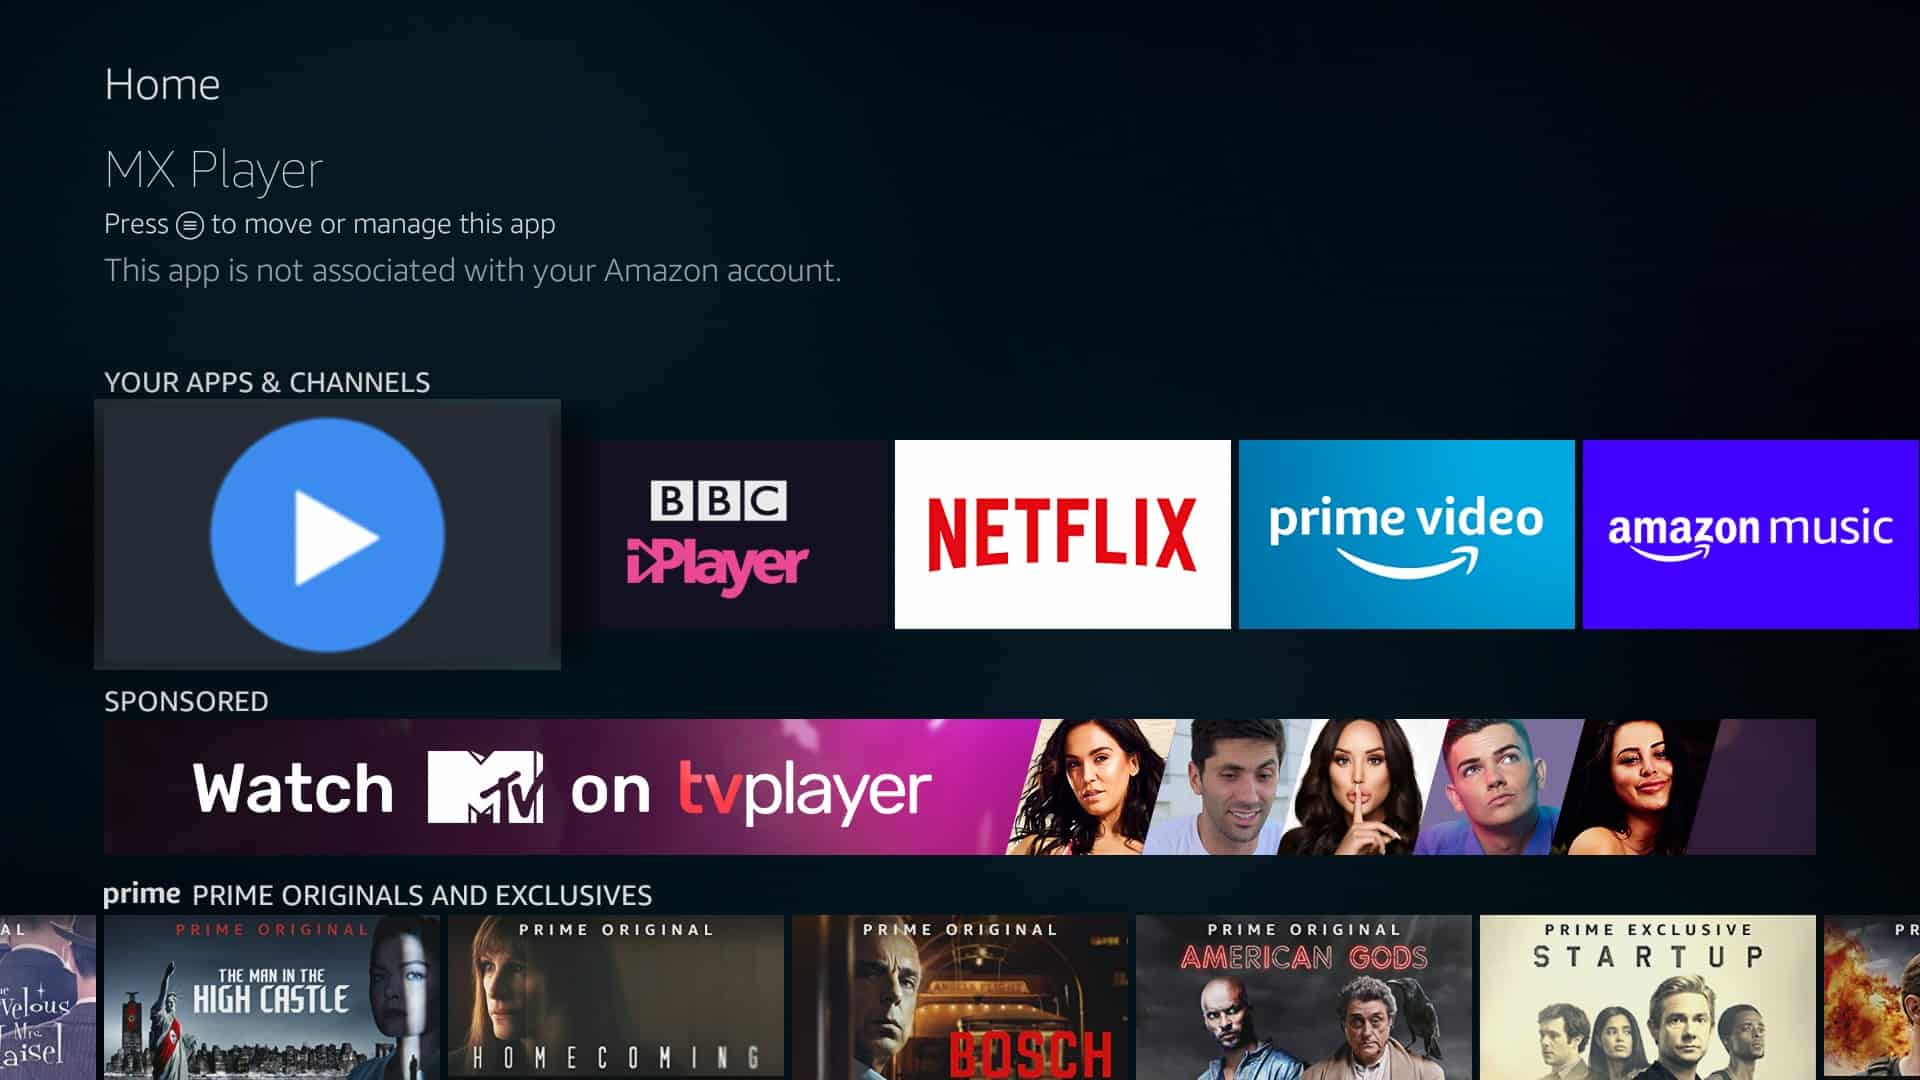 How to install MX Player on Amazon Firestick or Fire TV | Comparitech